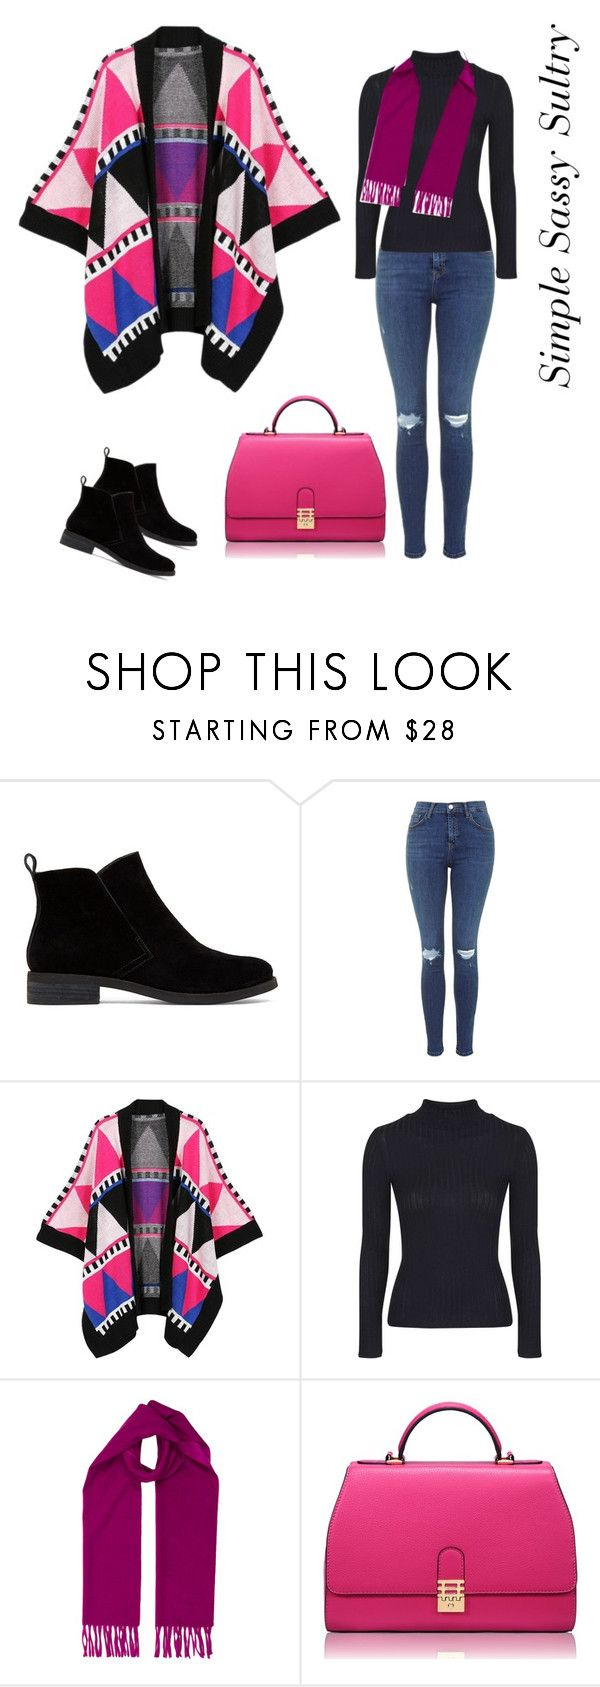 """""""Keep Me Warm !"""" by simplesassysultry ❤ liked on Polyvore featuring Lucky Brand, WithChic, Topshop, Hermès, Florian London, women's clothing, women's fashion, women, female and woman"""